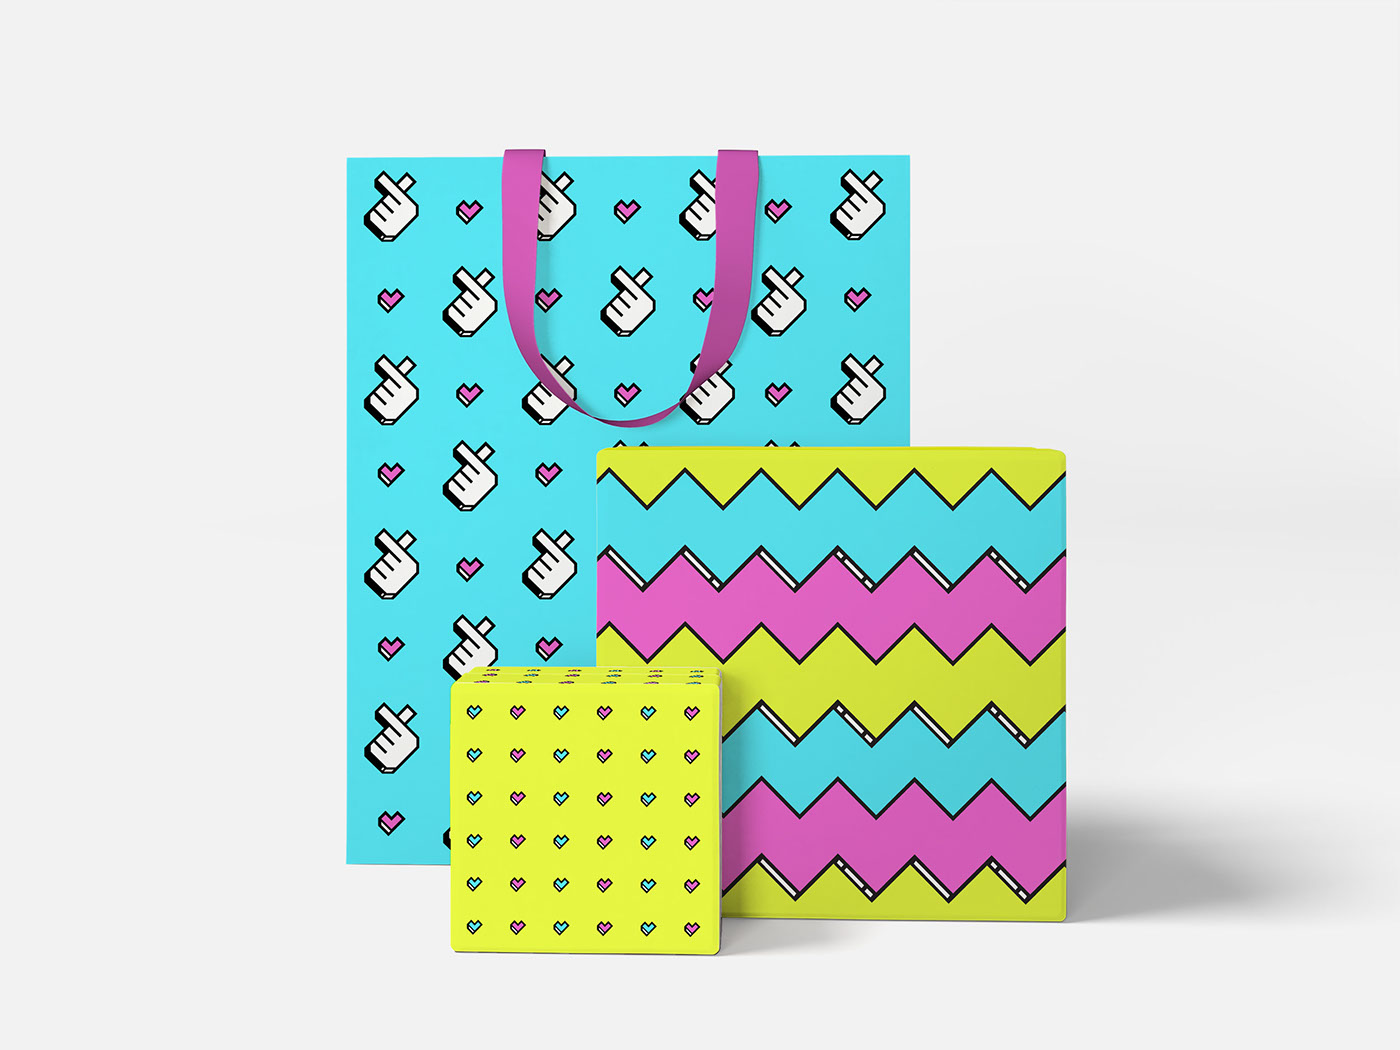 branding ,gif,animated,pop,pattern,Packaging,kpop,Identity Design,apparel,Tshirt Design